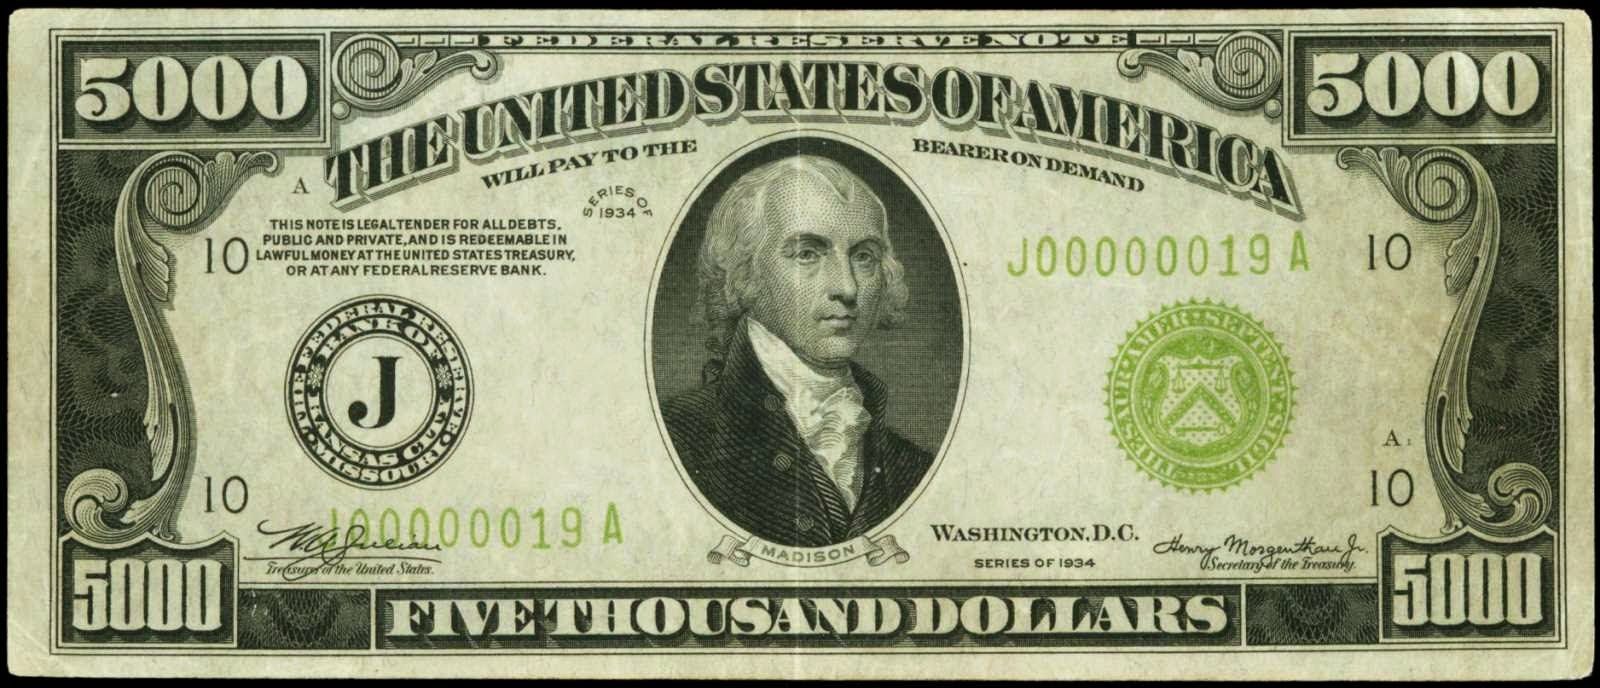 1934 5000 Five Thousand Dollar Federal Reserve Notes Portrait Of James Madison